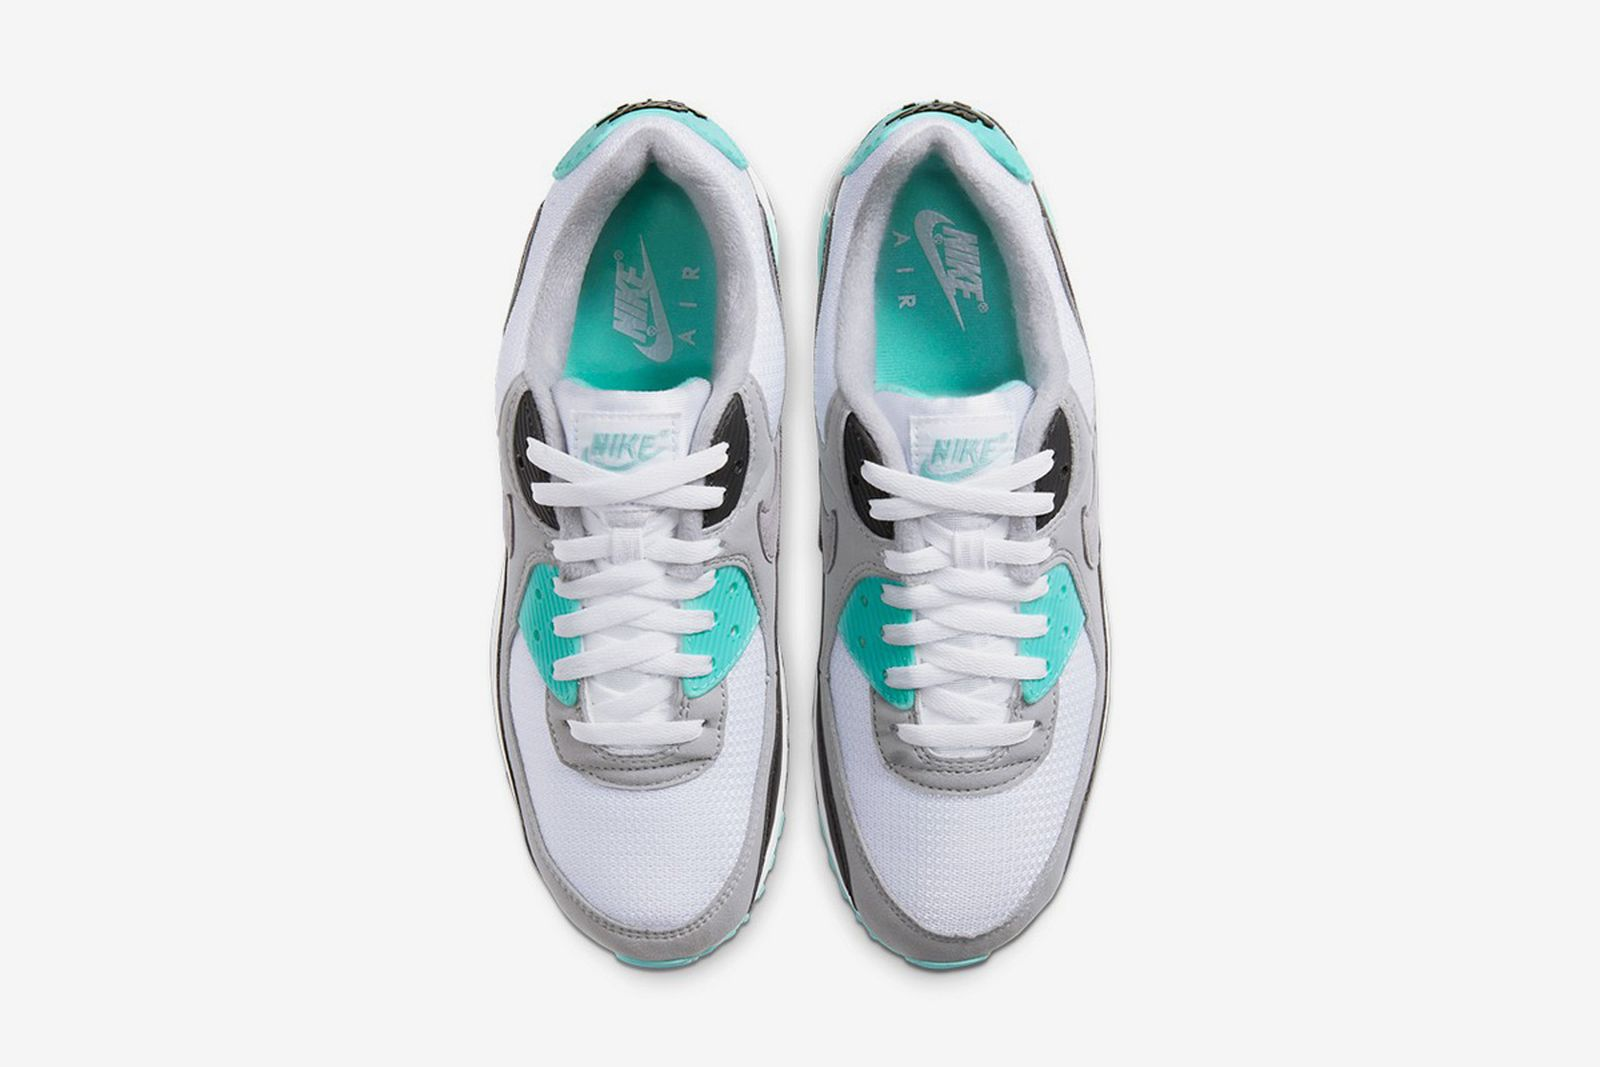 nike-air-max-90-30th-anniversary-colorways-release-date-price-1-04